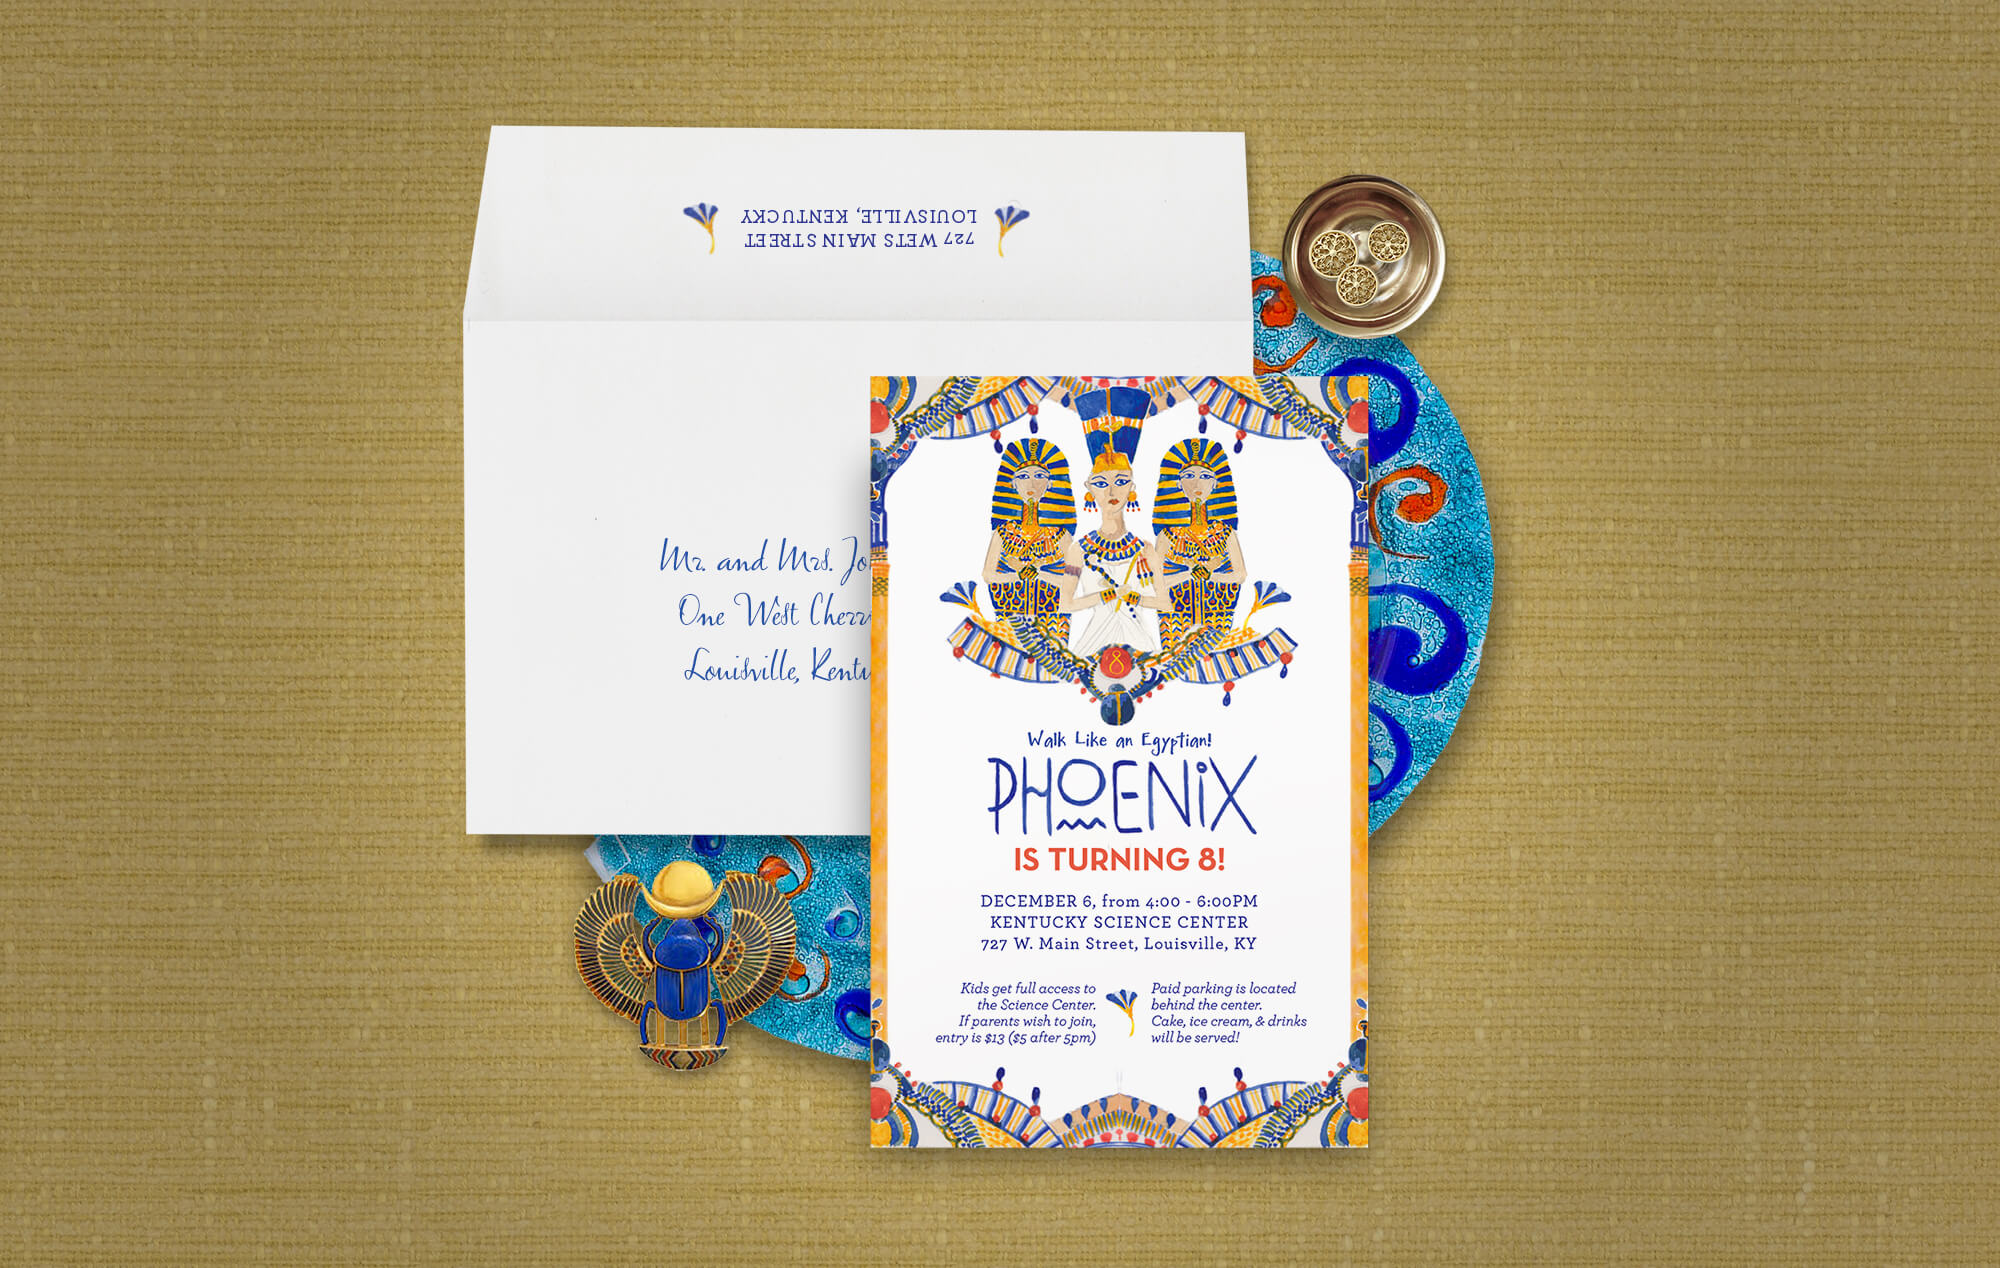 Walk like an Egyptian children's birthday party invitation